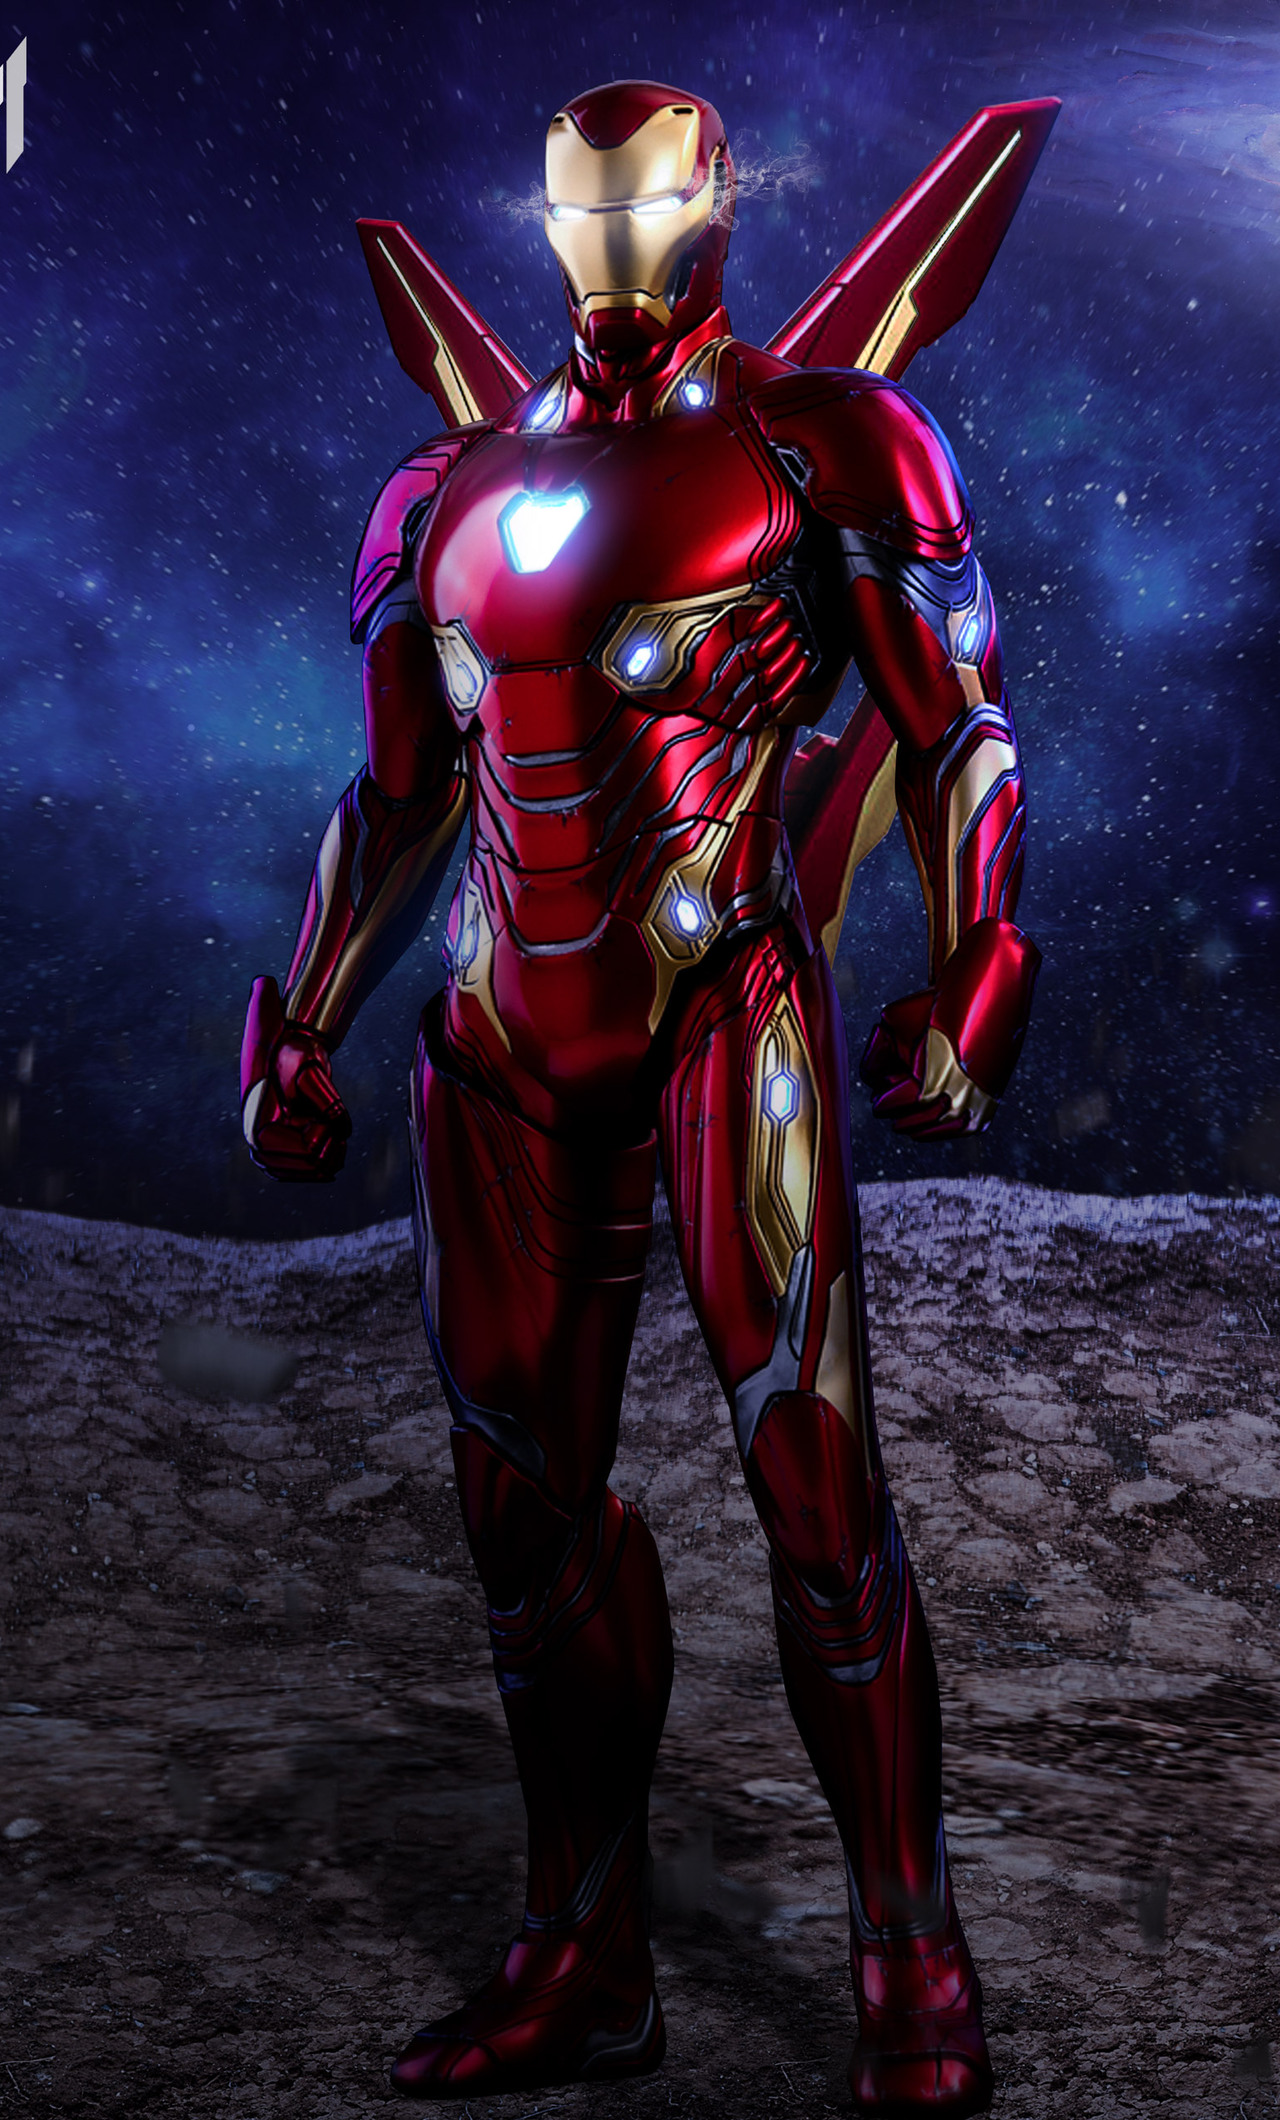 1280x2120 Iron Man Avengers Infinity War Suit Artwork Iphone 6 Hd